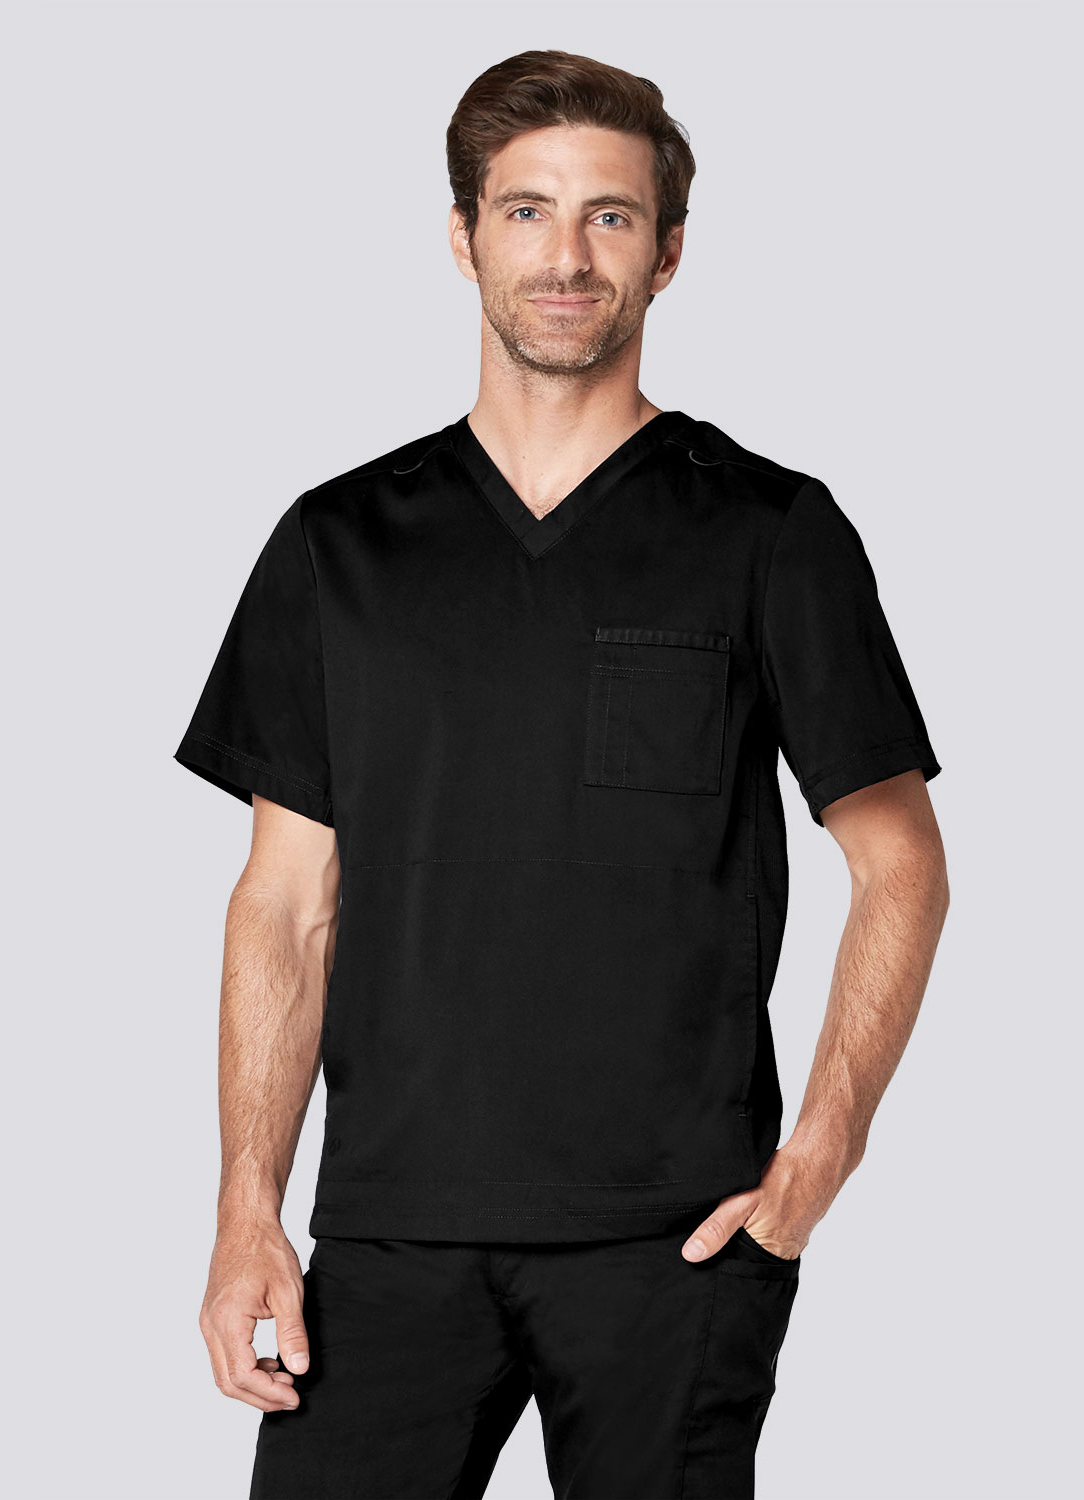 Men's Active V-Neck Top